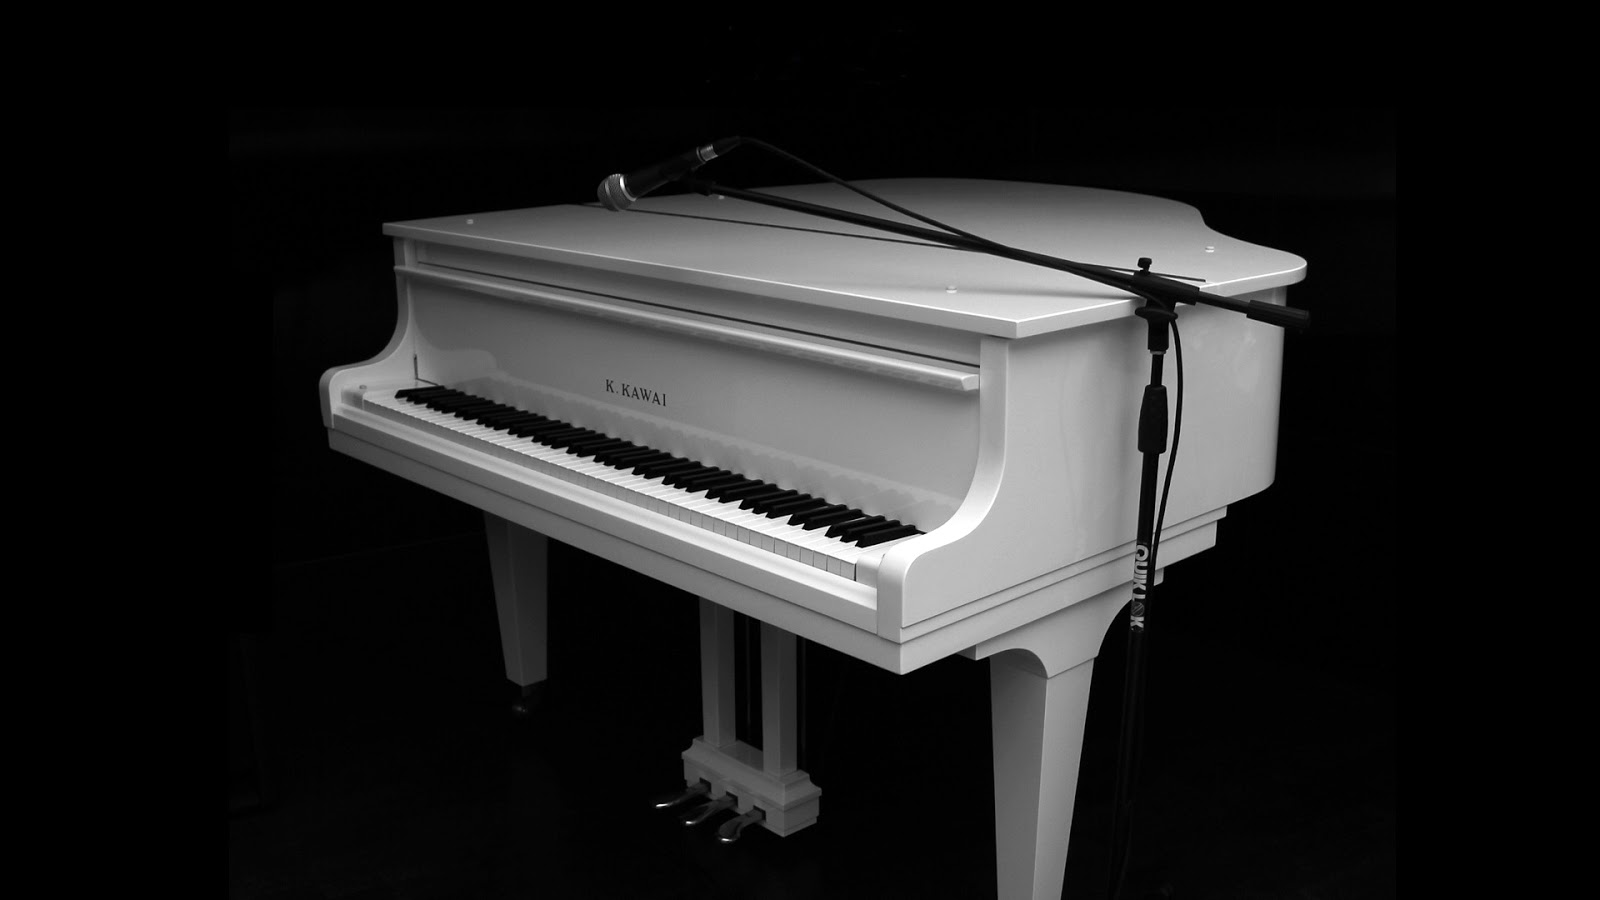 Piano hd wallpapers wallpapersafari - Cool piano backgrounds ...